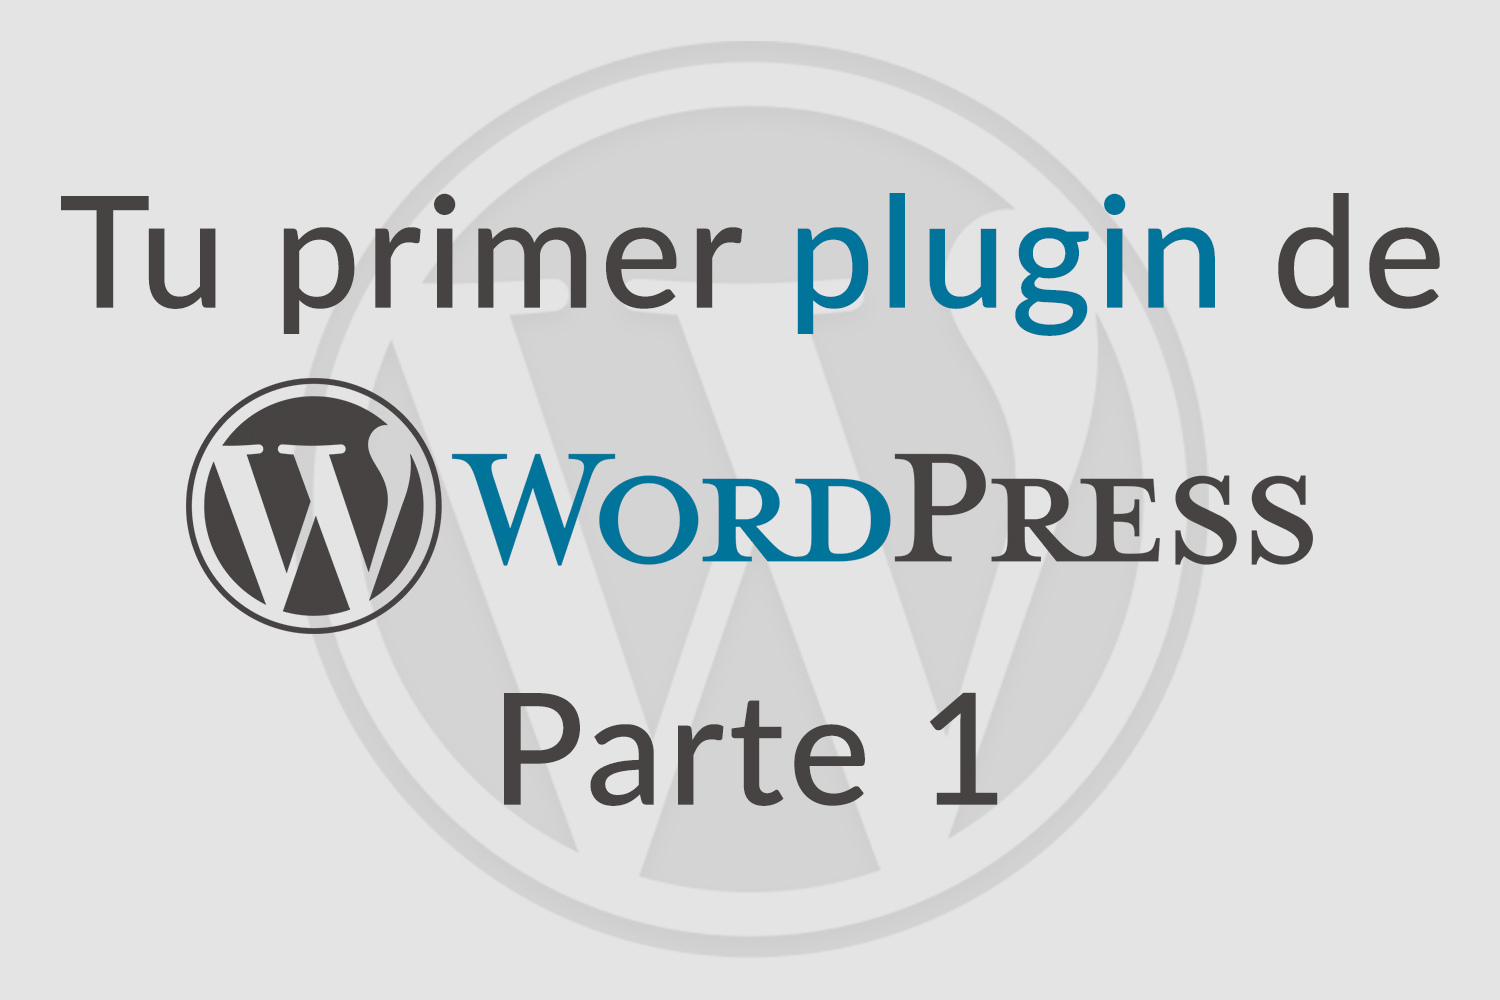 desarrollo-plugin-wordpress-1